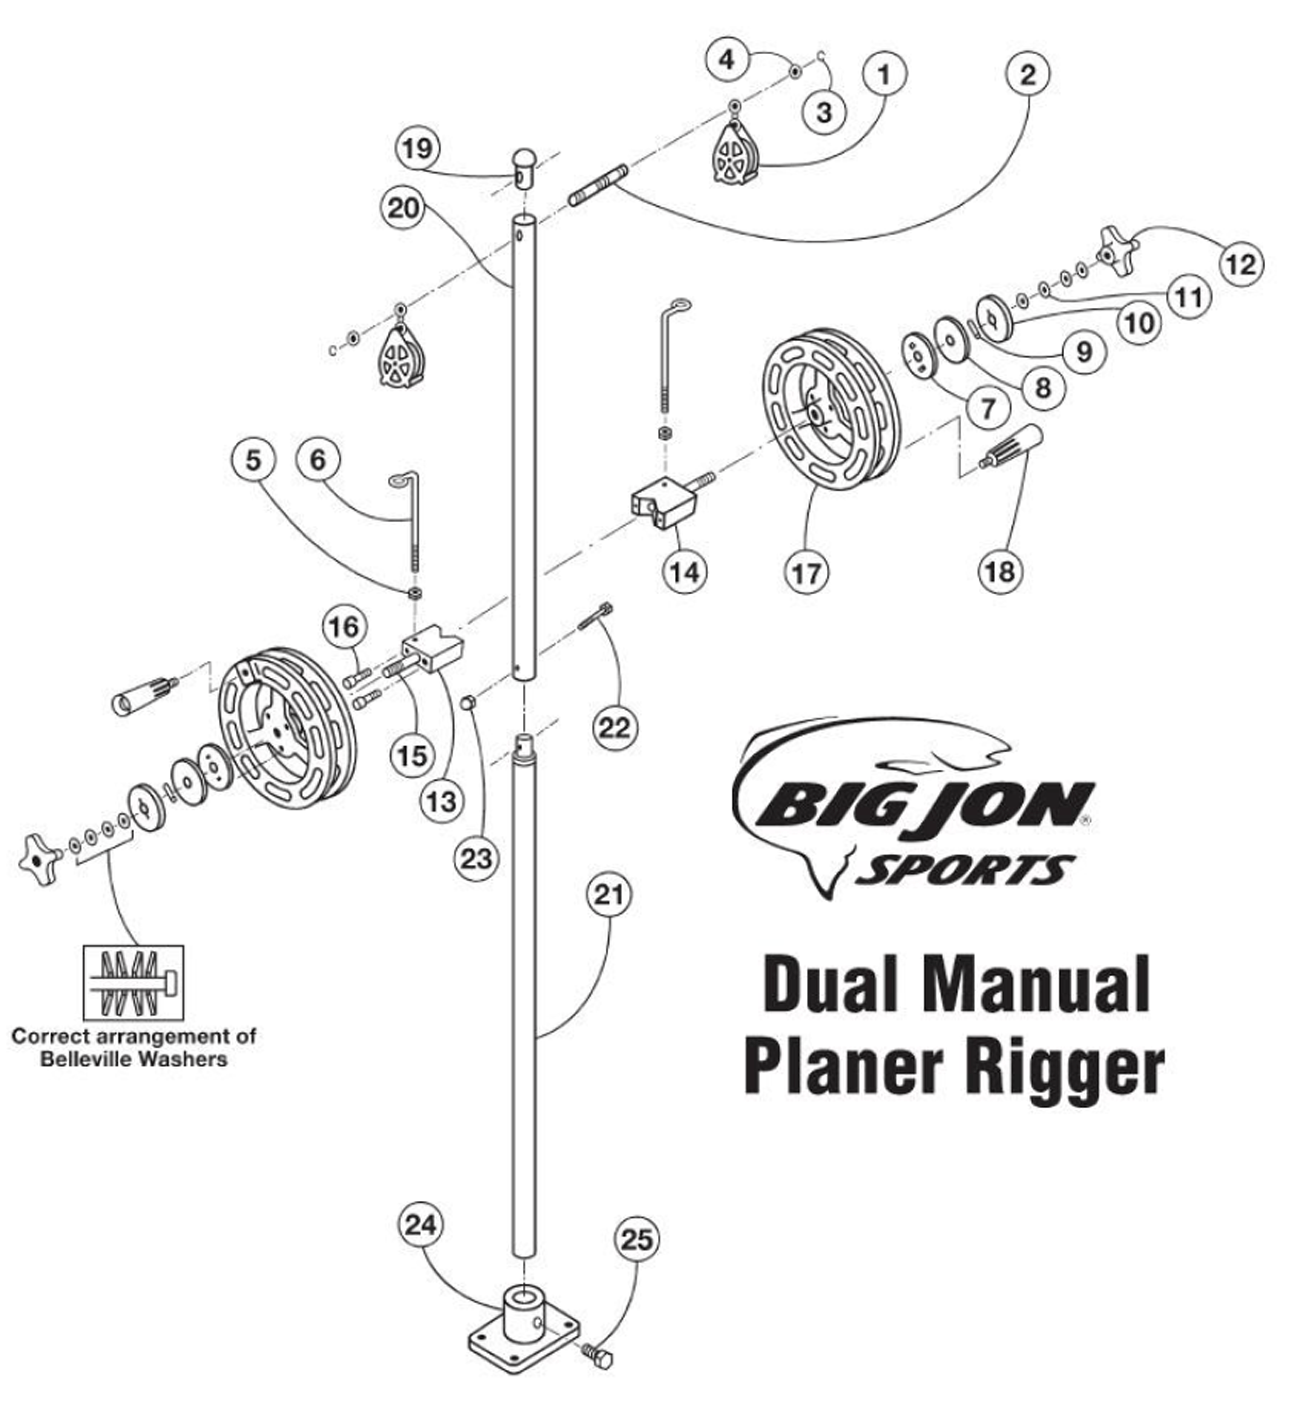 Order Big Jon Dual Manual Planer Rigger parts online from